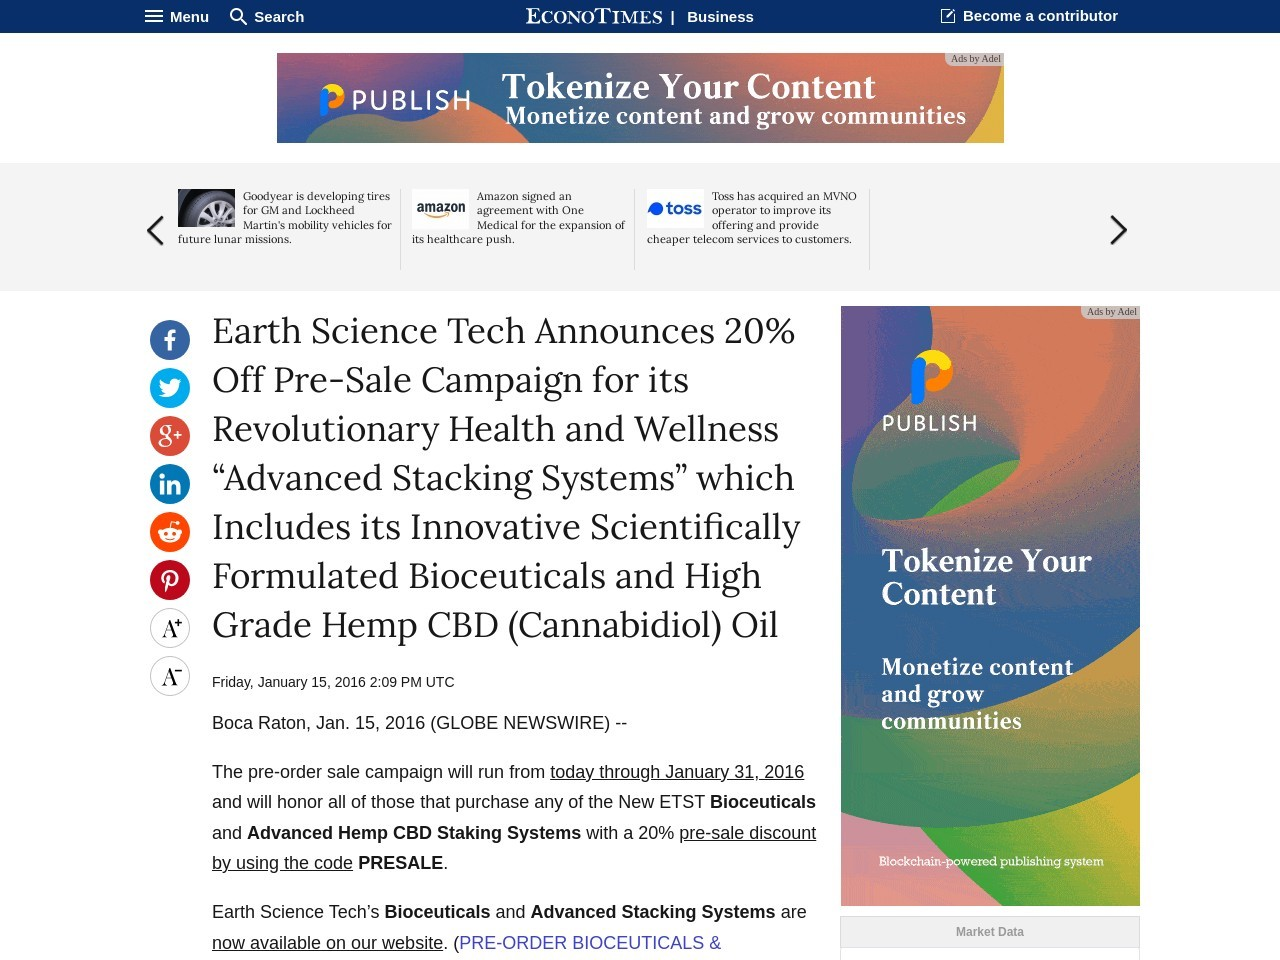 Earth Science Tech Announces 20 Off Pre-Sale Campaign for its Revolutionary …